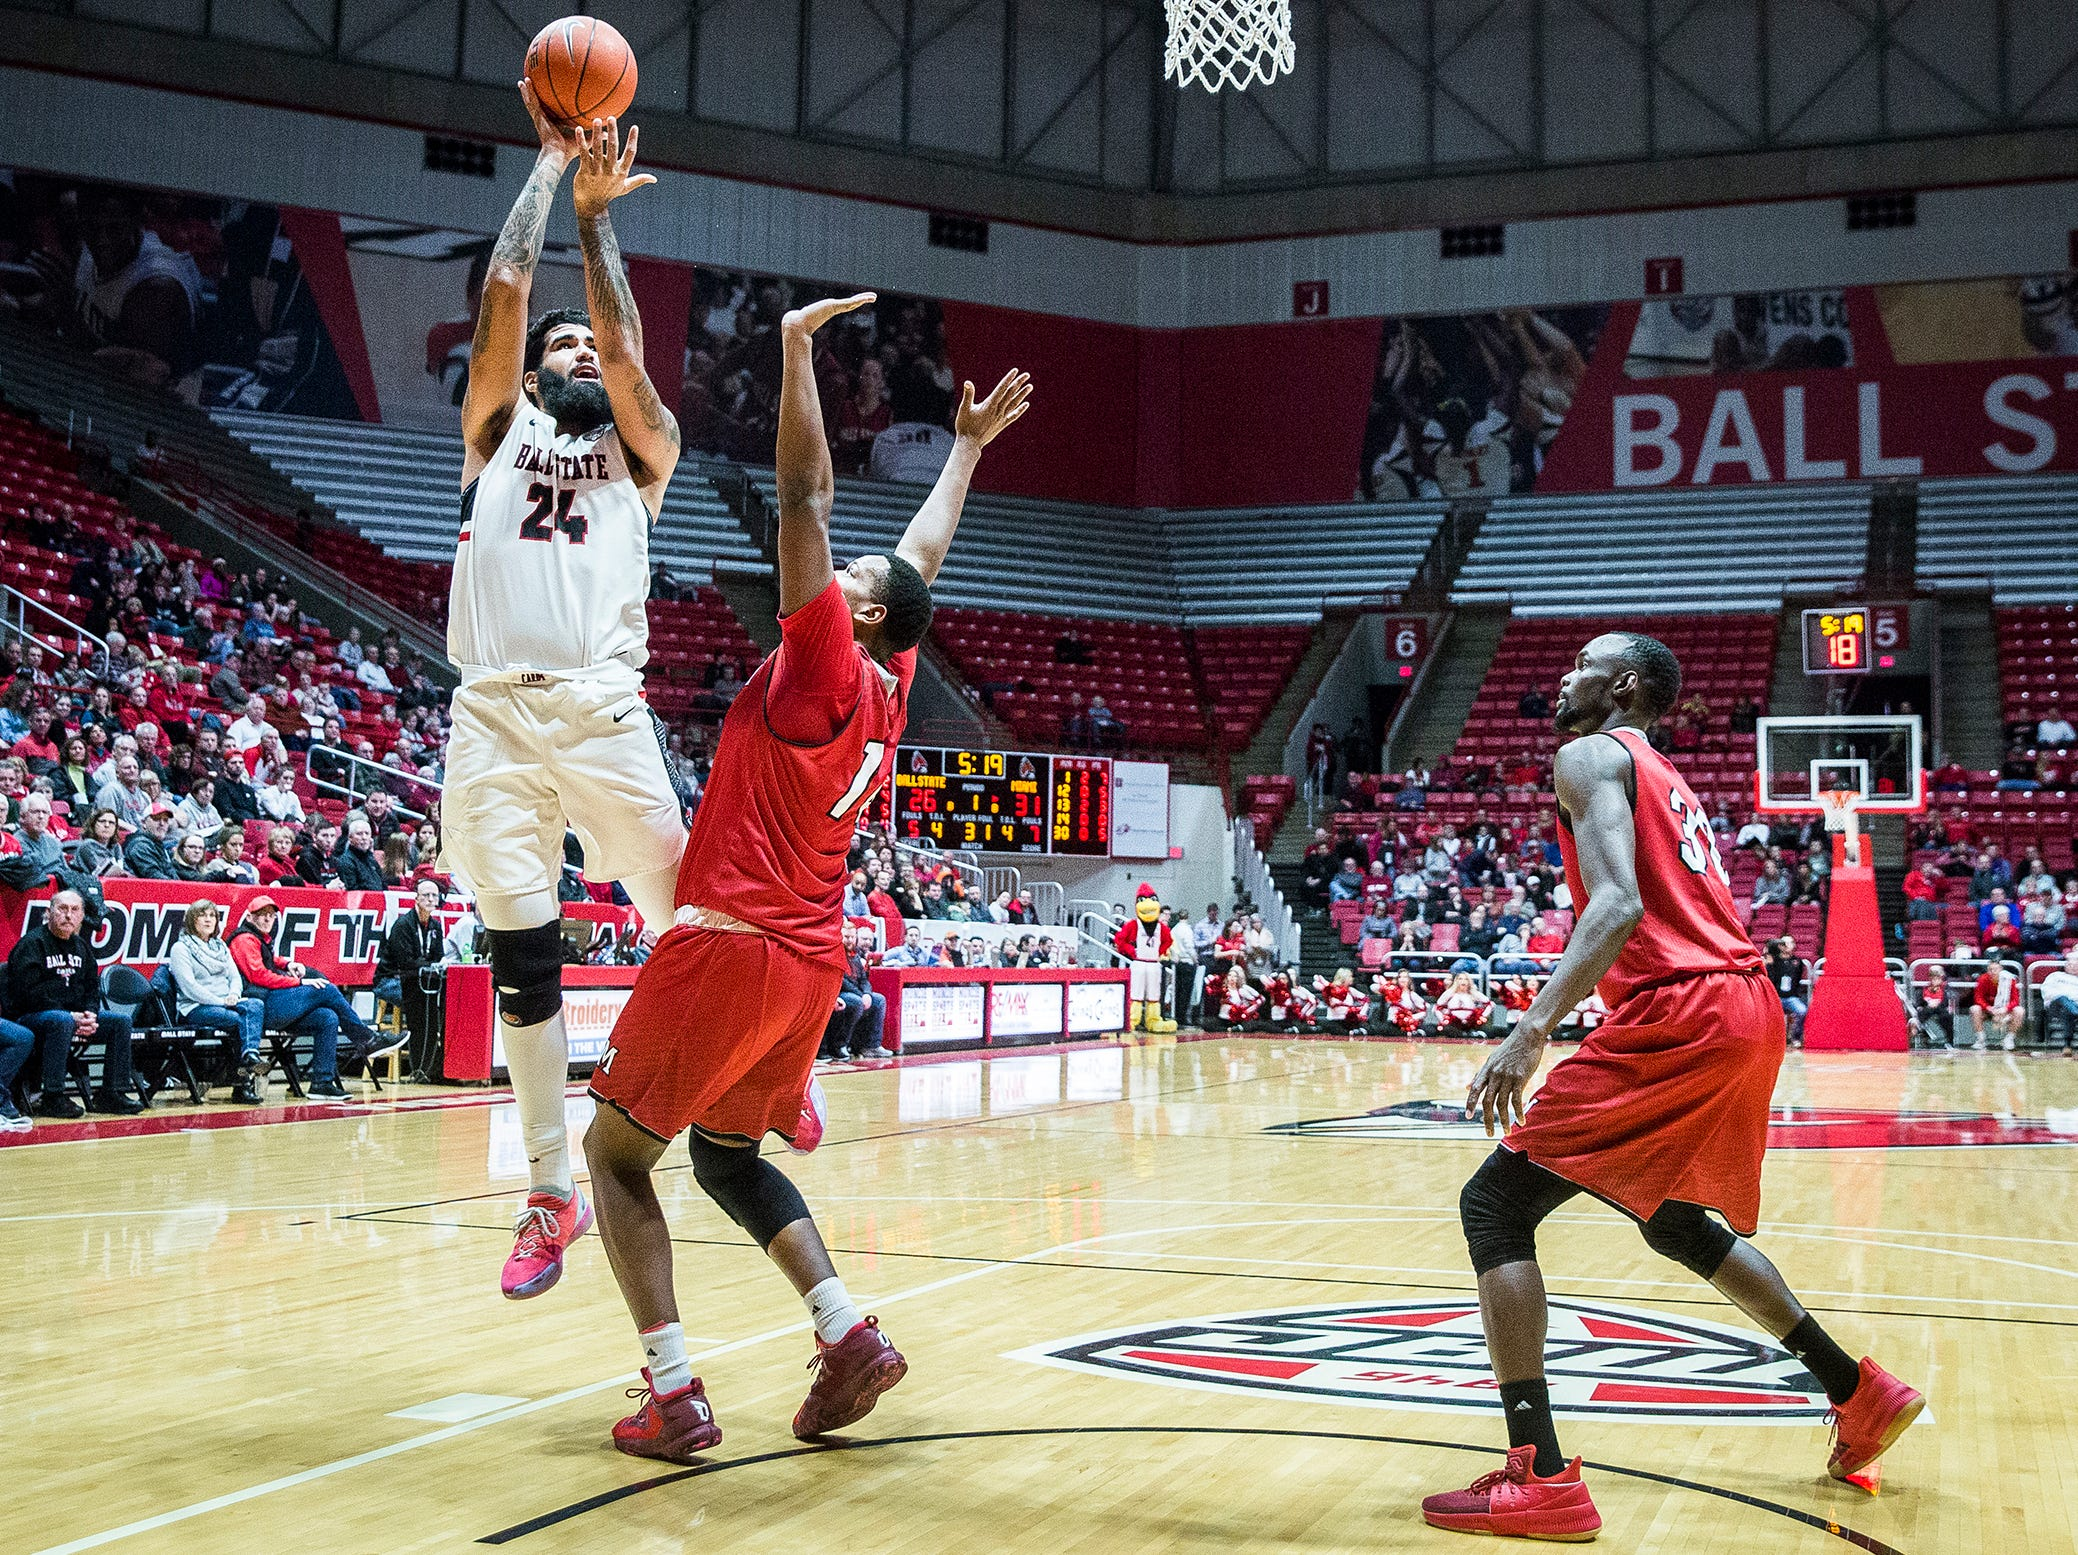 Ball State's Trey Moses shoots past Miami's defense during their game at Worthen Arena Tuesday, Jan. 22, 2018.